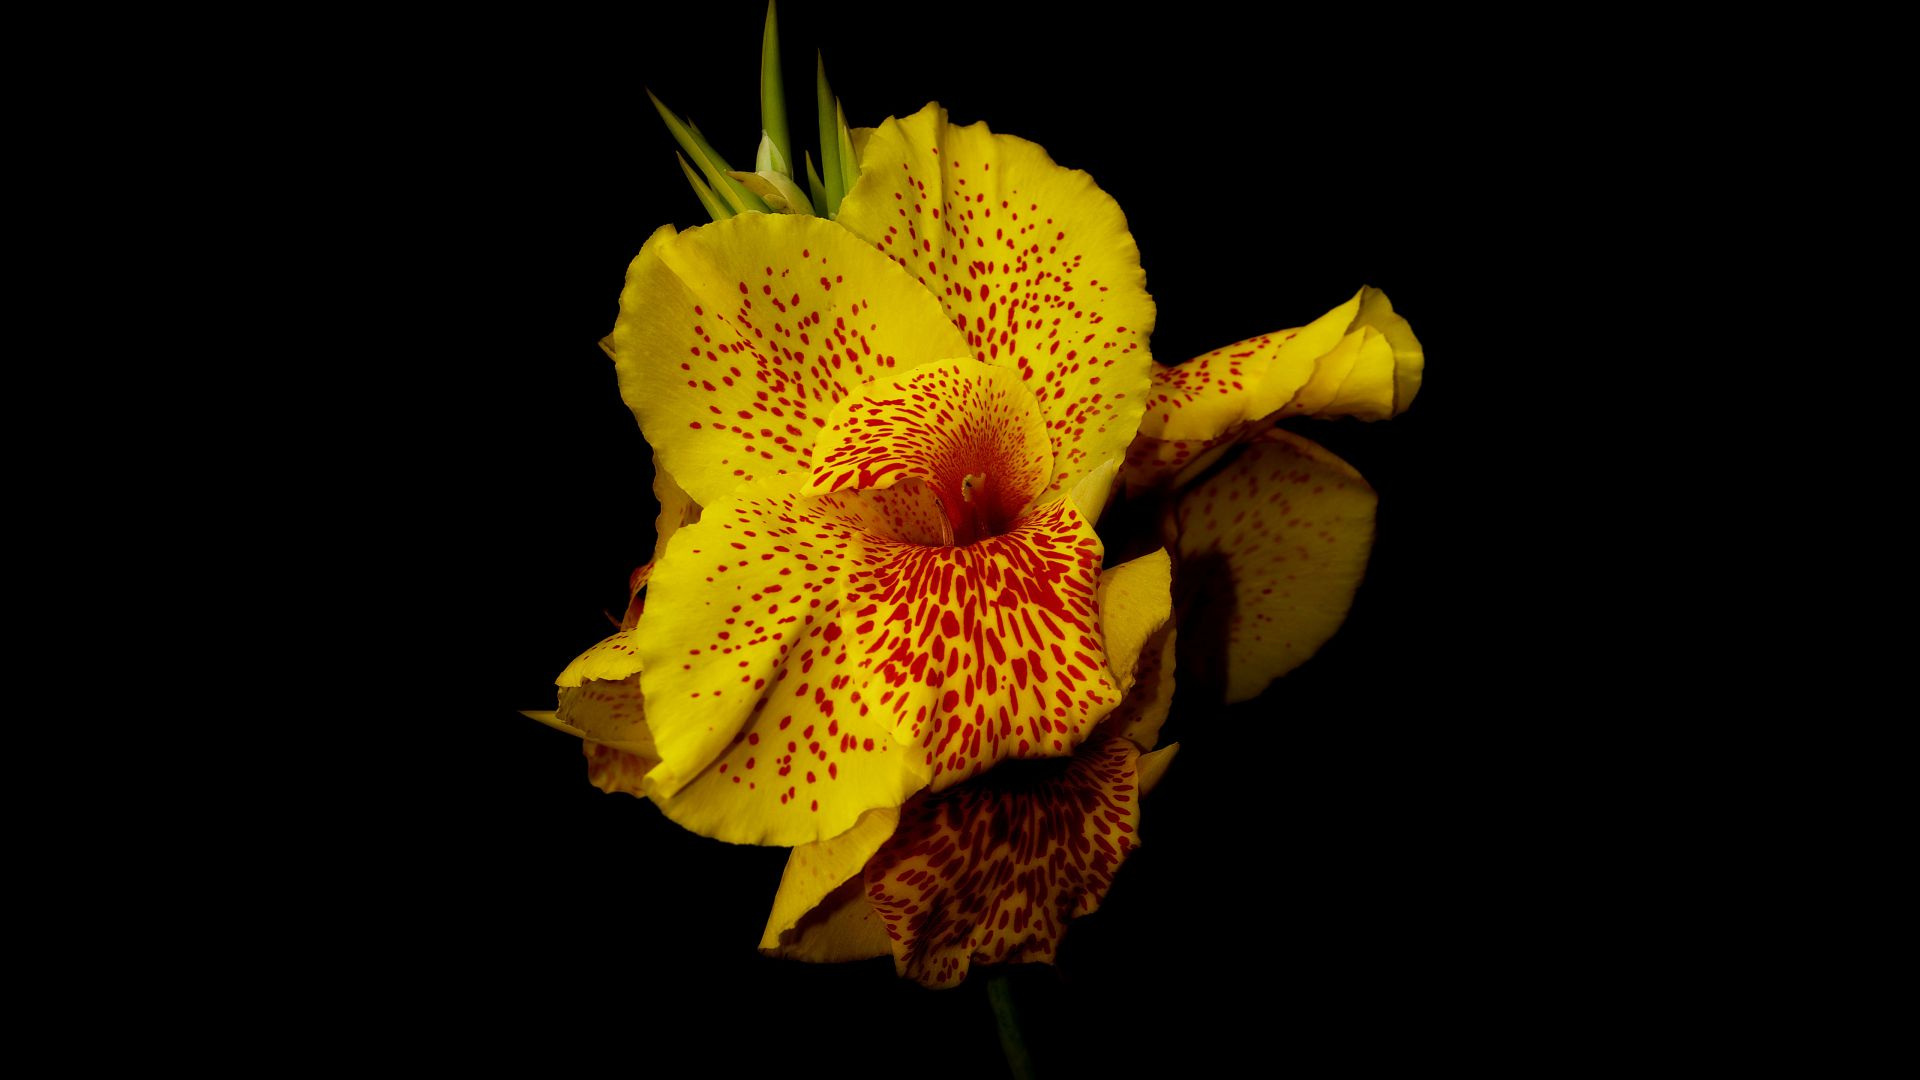 Canna Wallpaper Nature Canna flowers yellow 1920x1080